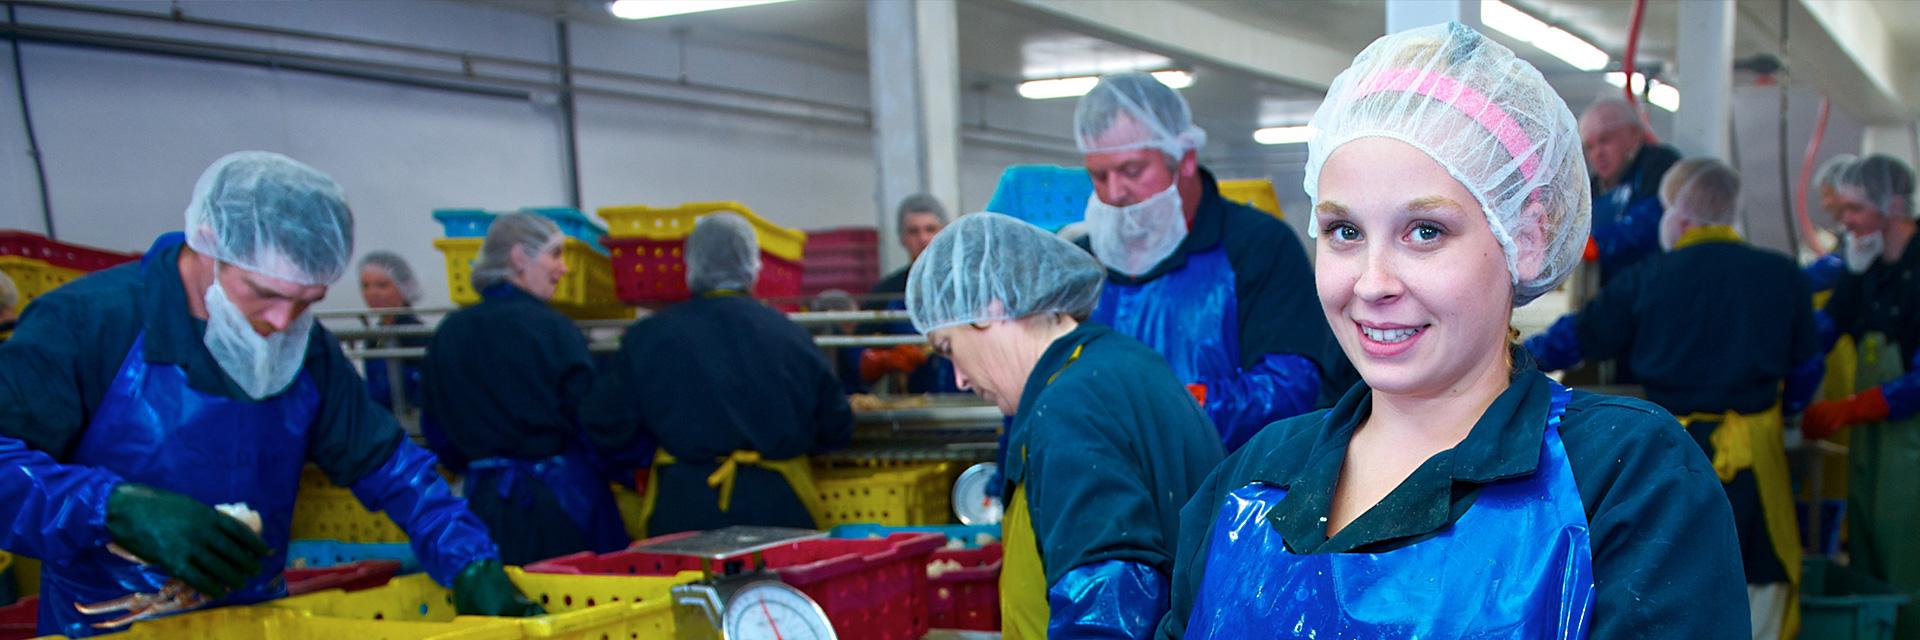 Victoria Co-operatives Fisheries products in Nova Scotia, Canada